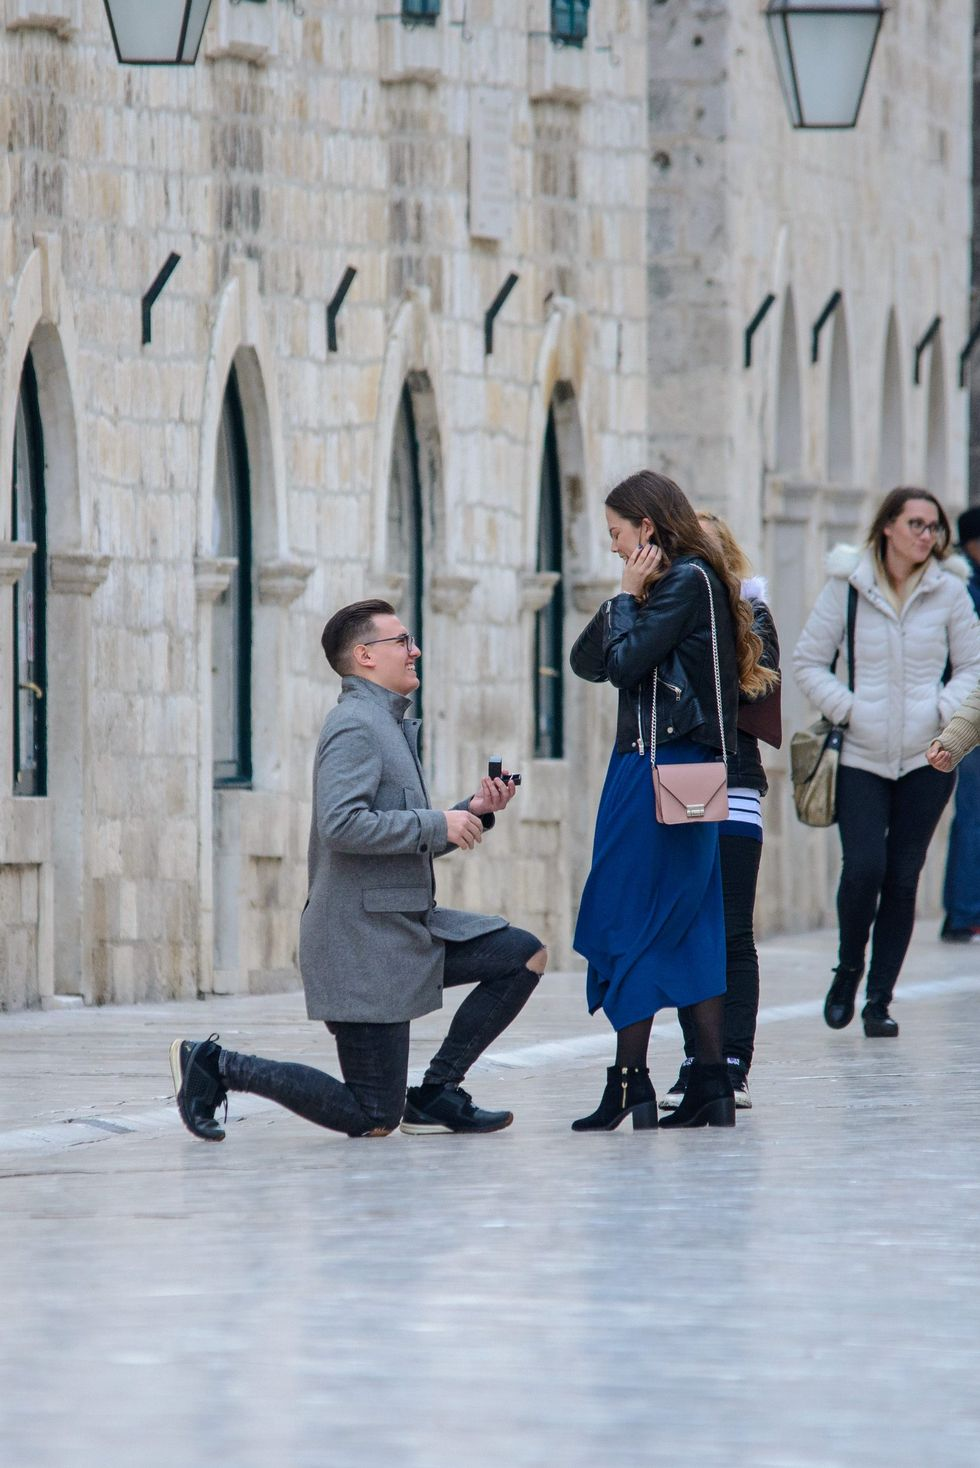 Romantic Proposal